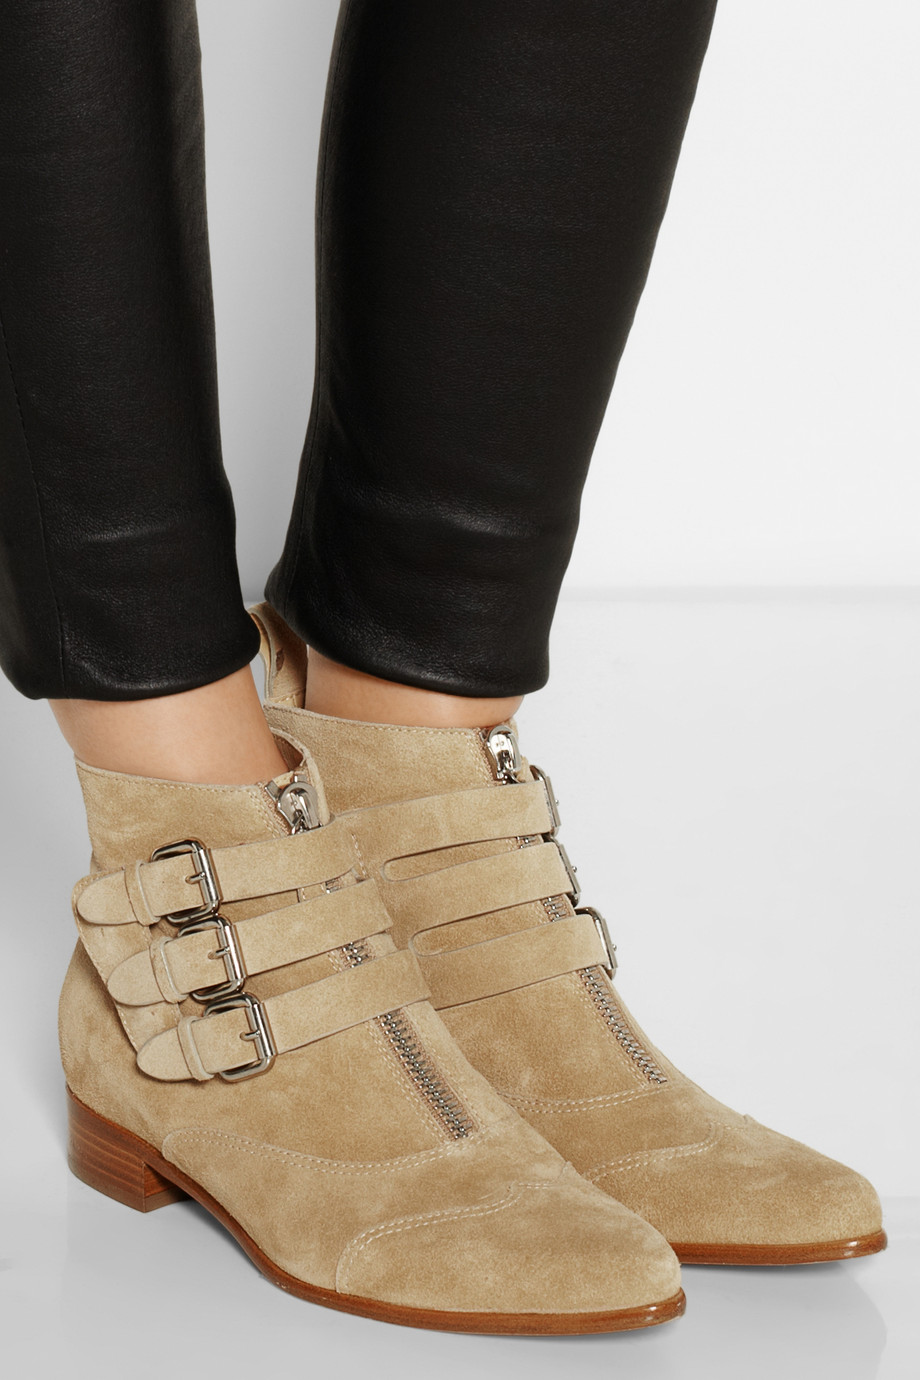 Tabitha Simmons Platform Ankle Boots sale countdown package visit new cheap price manchester great sale sale online prices cheap price shopping online cheap online Tv595